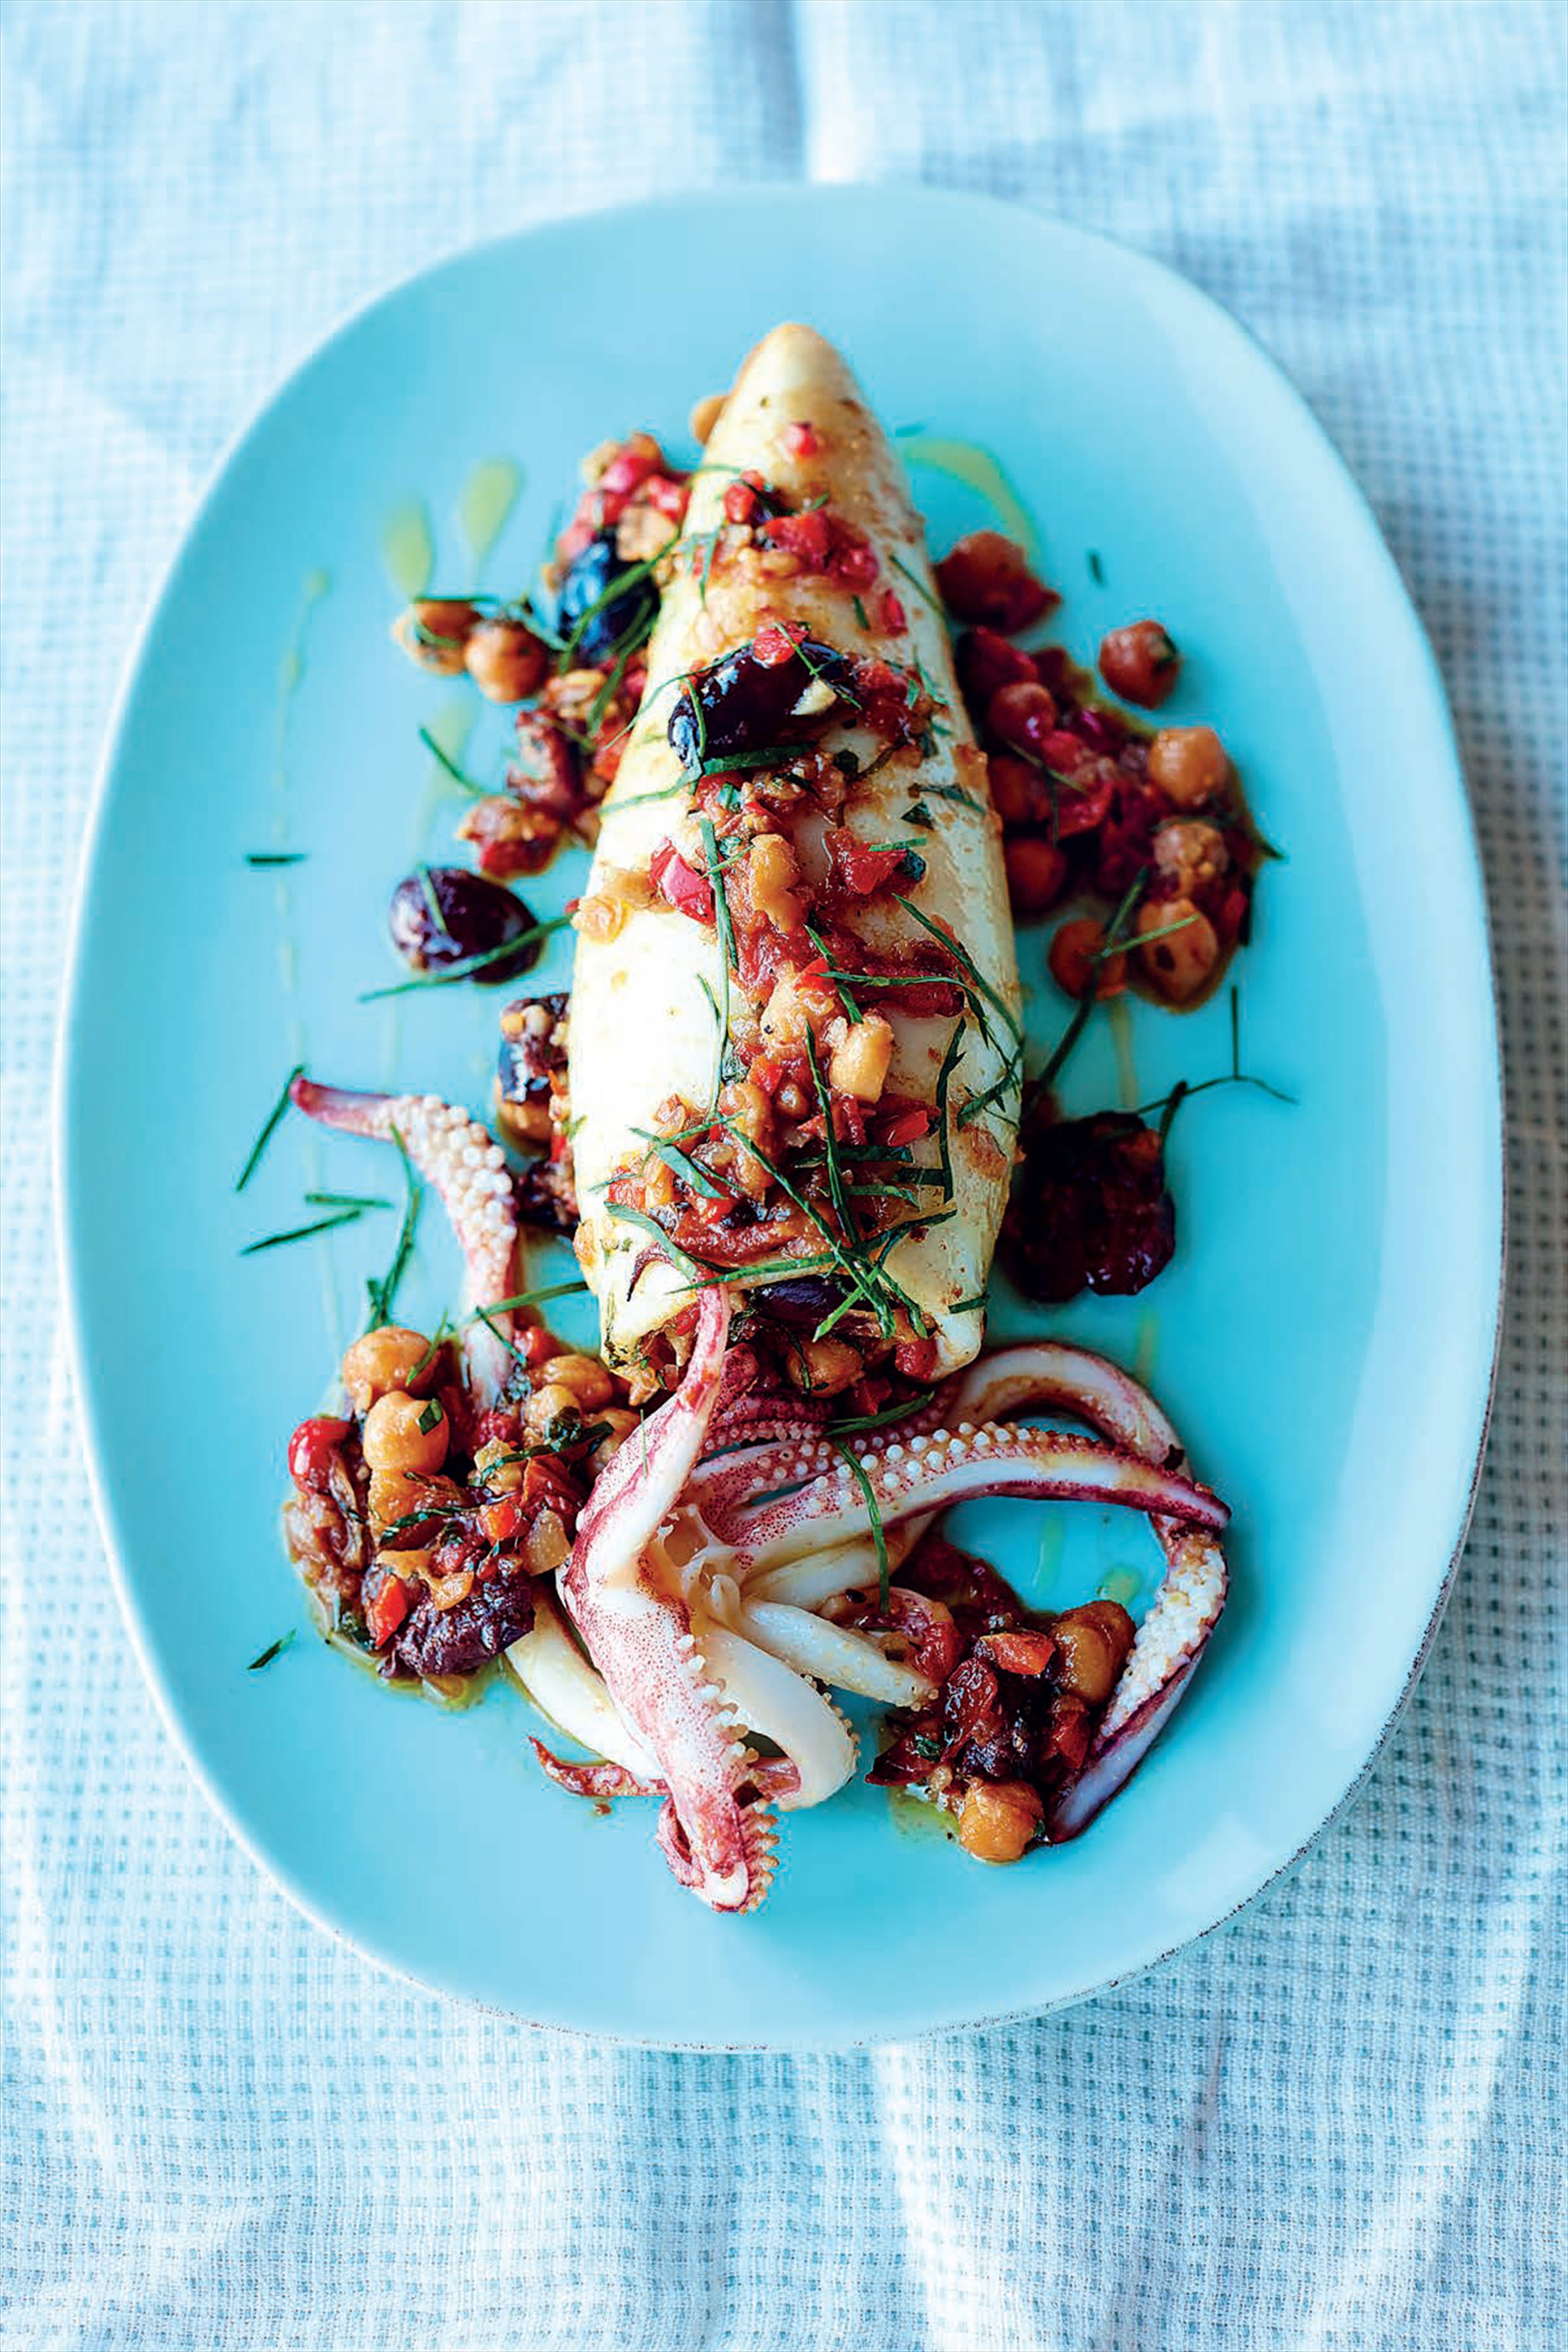 Stuffed squid, red peppers, chickpeas, olives and sherry